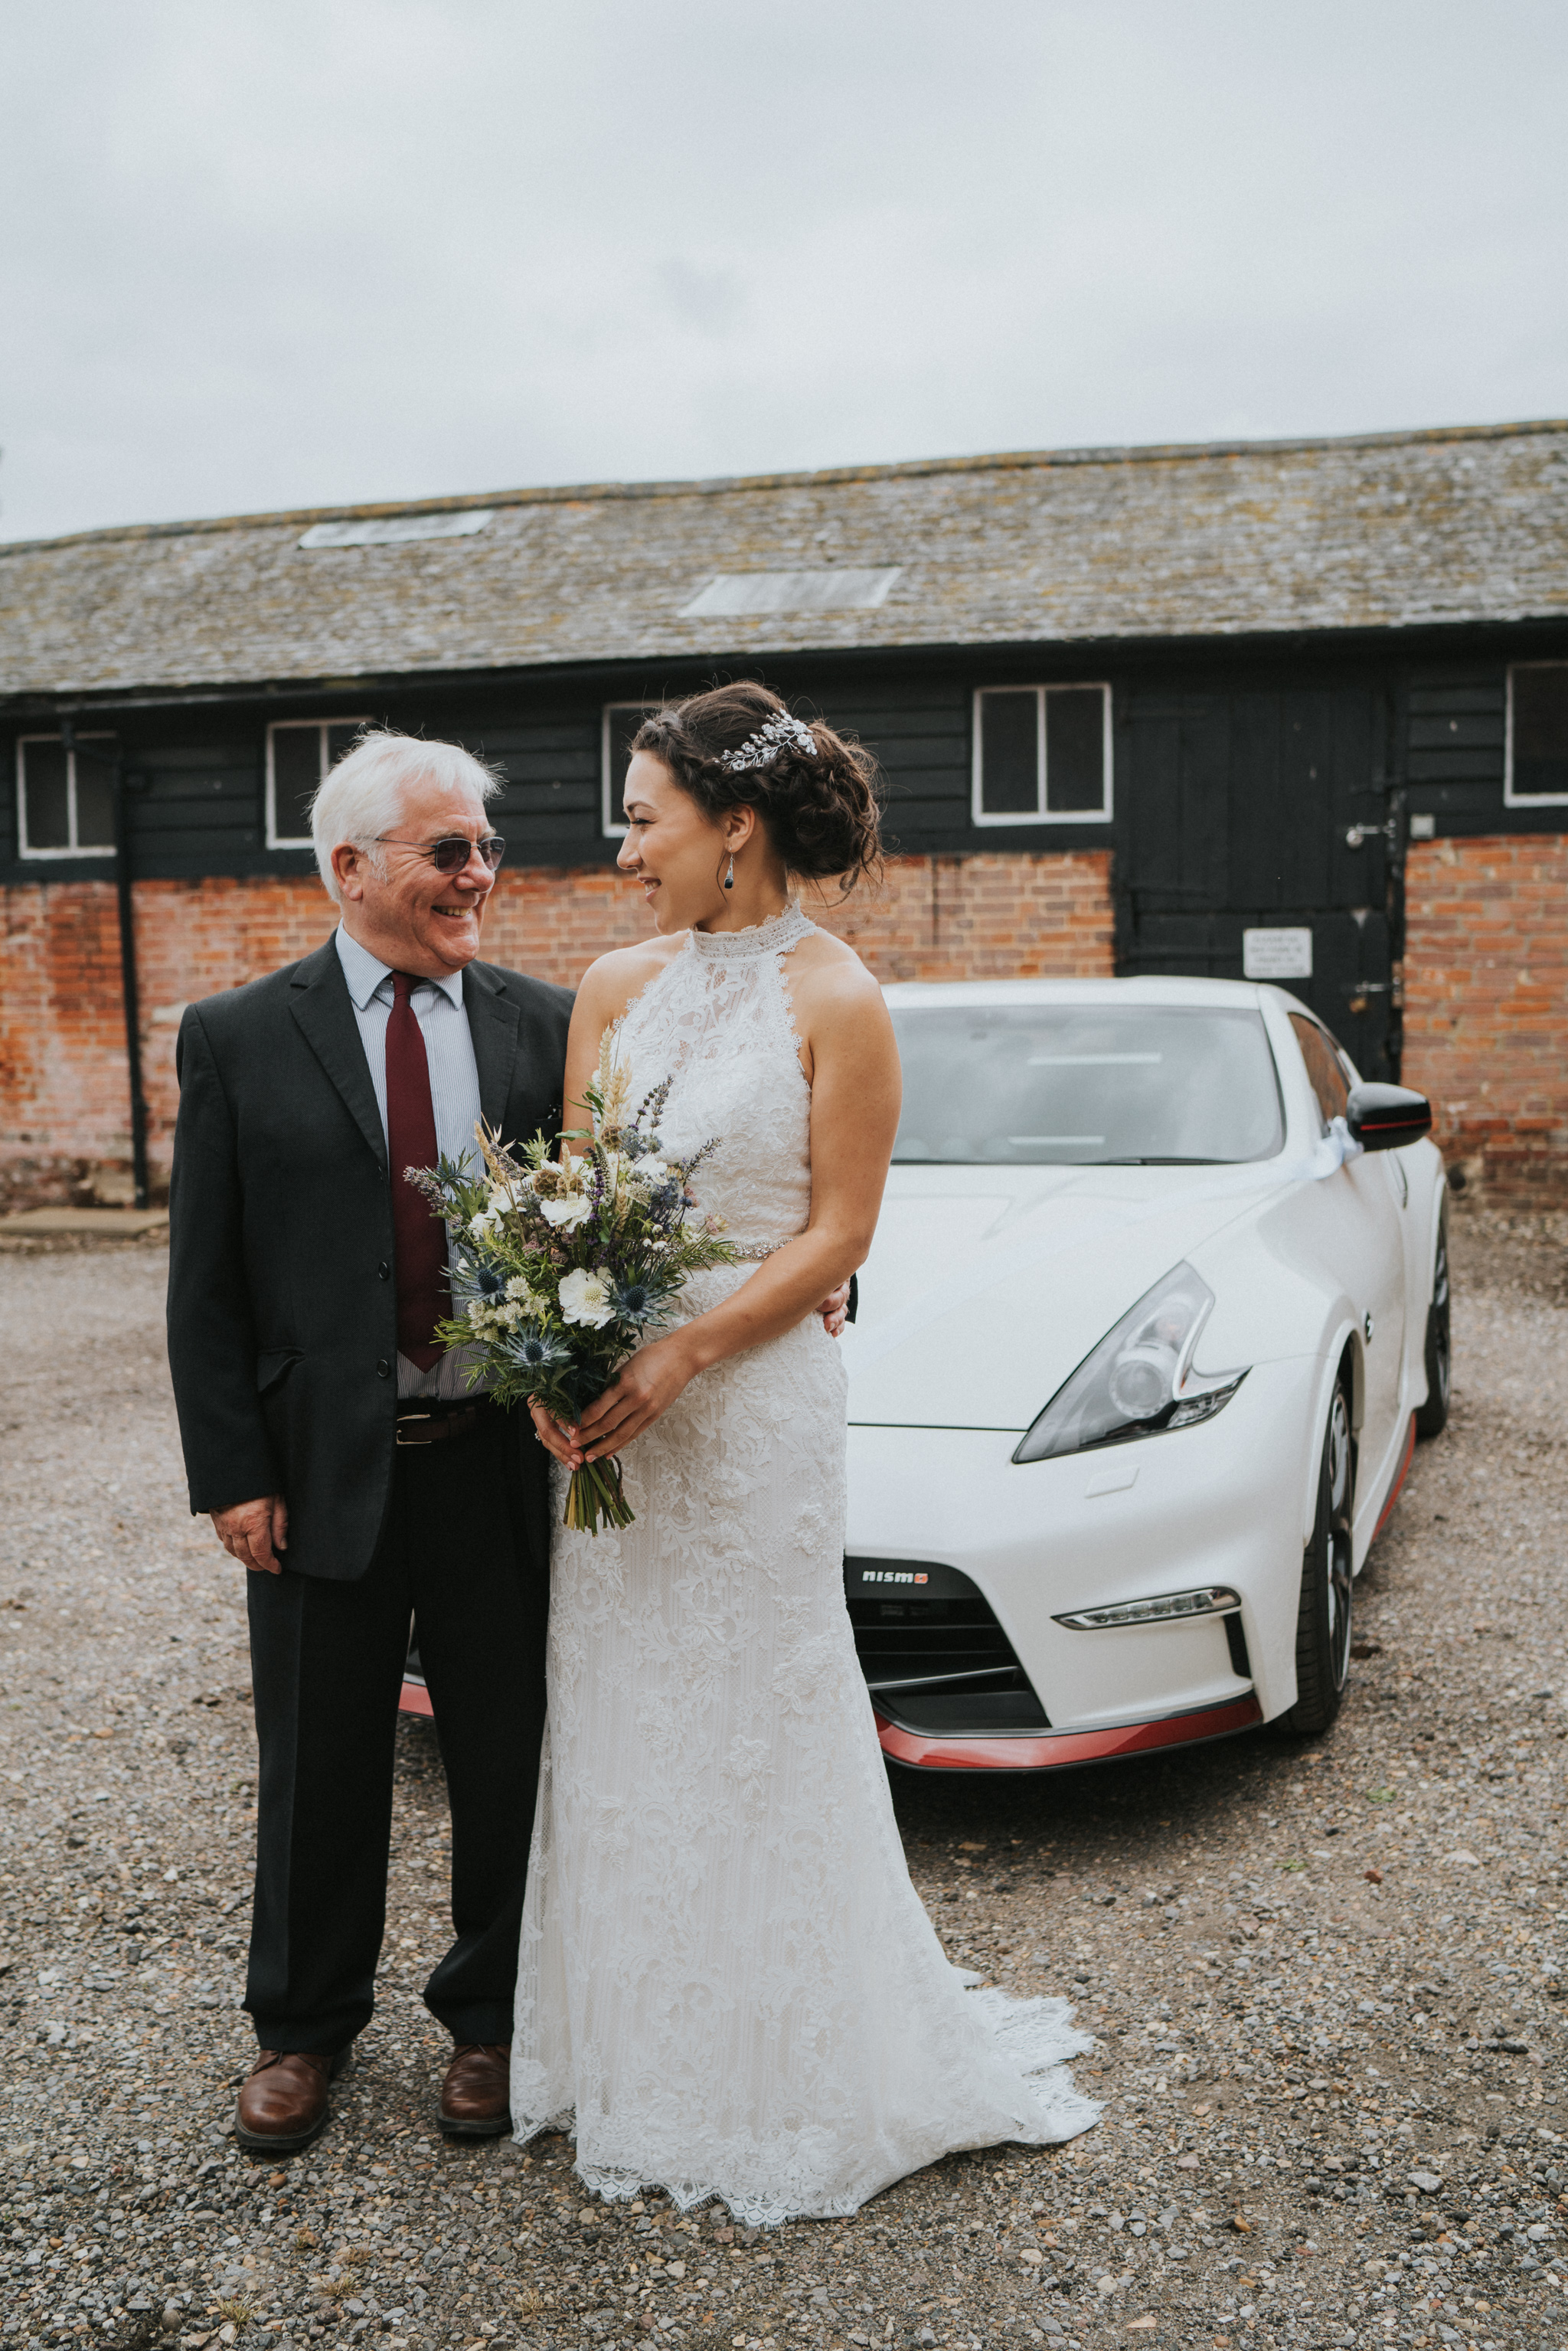 jane-patrick-smeetham-hall-barn-grace-elizabeth-colchester-essex-alternative-wedding-lifestyle-photographer-essex-suffolk-norfolk-devon (13 of 52).jpg